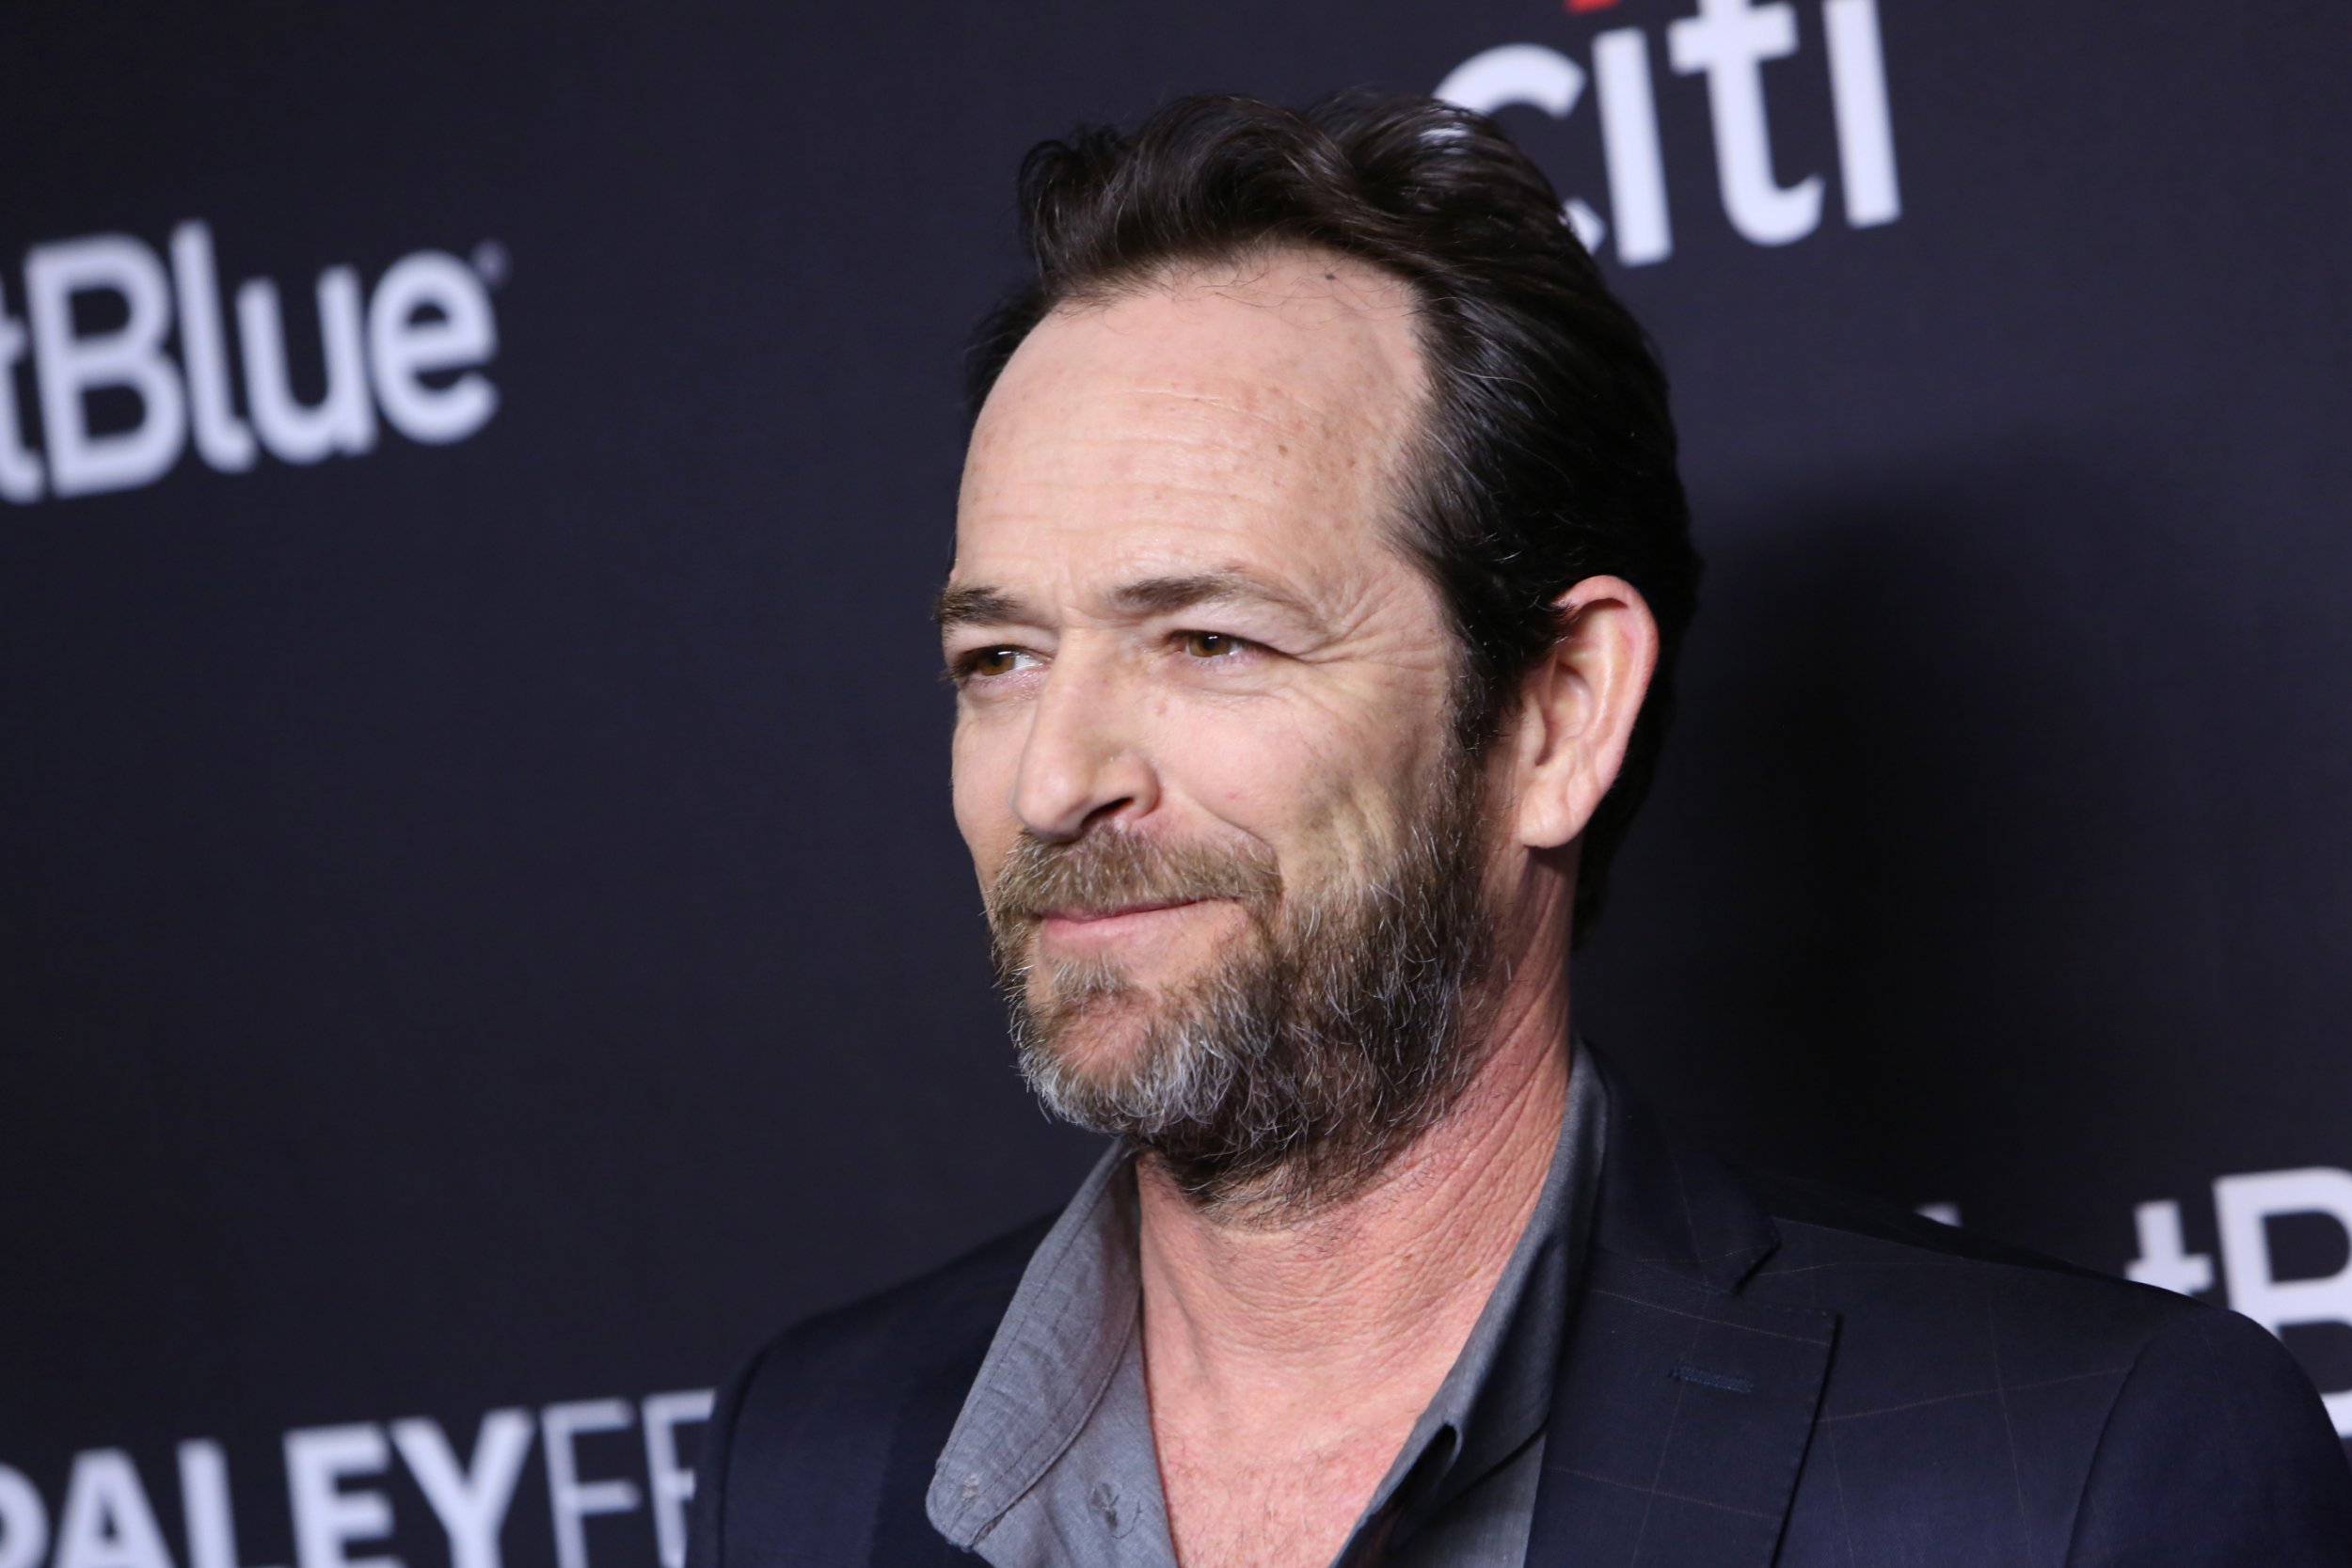 Luke Perry's daughter speaks out on father's death: 'Everything is happening so fast'